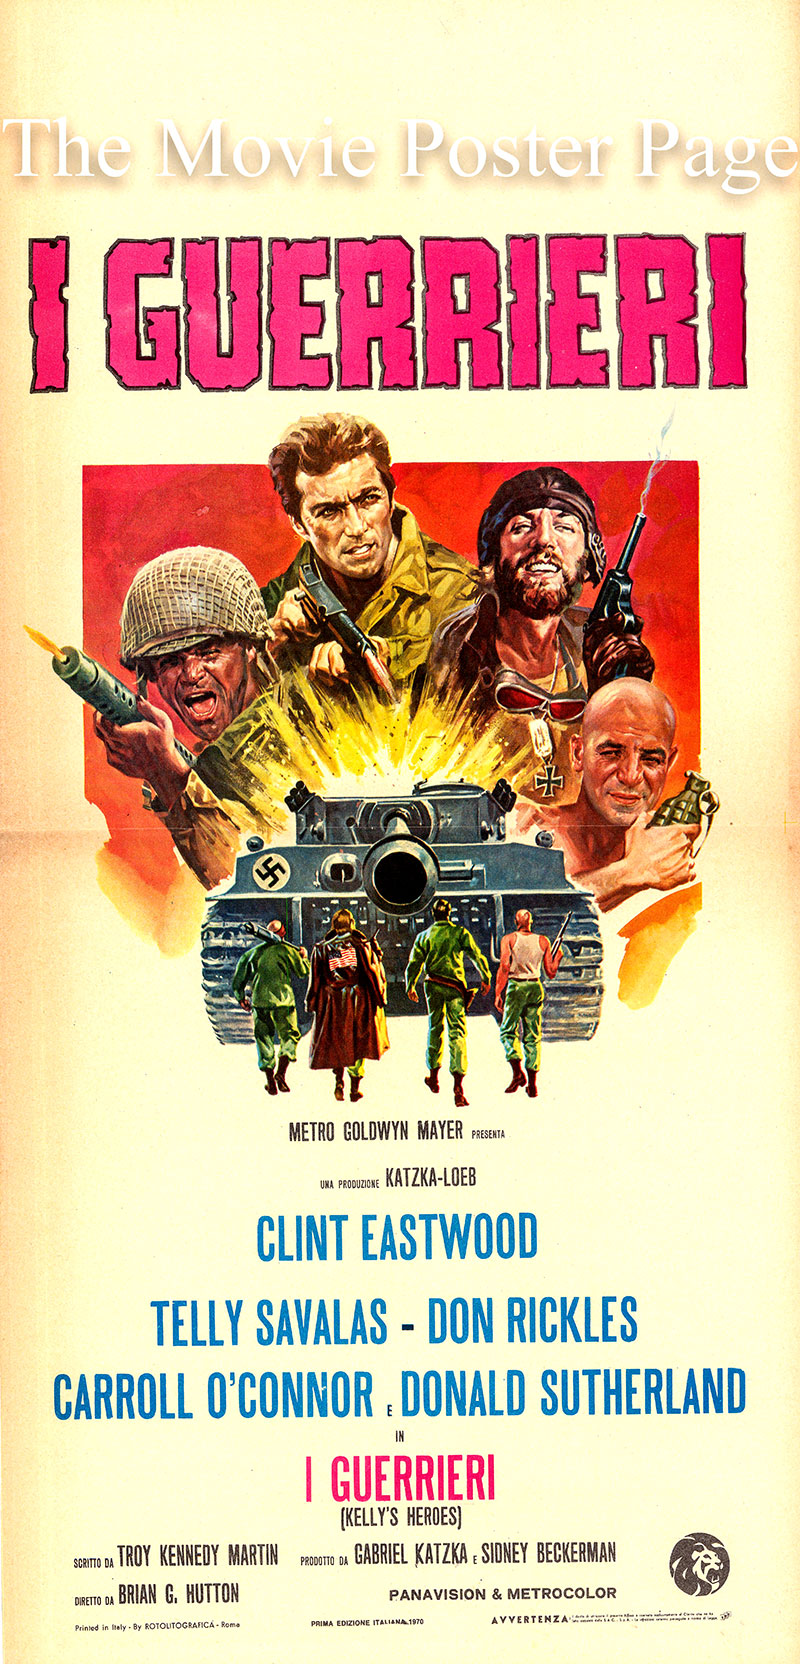 Pictured is an Italian locandina poster for the 1970 Brian G. Hutton film Kelly's Heroes starring Clint Eastwood as Kelly.